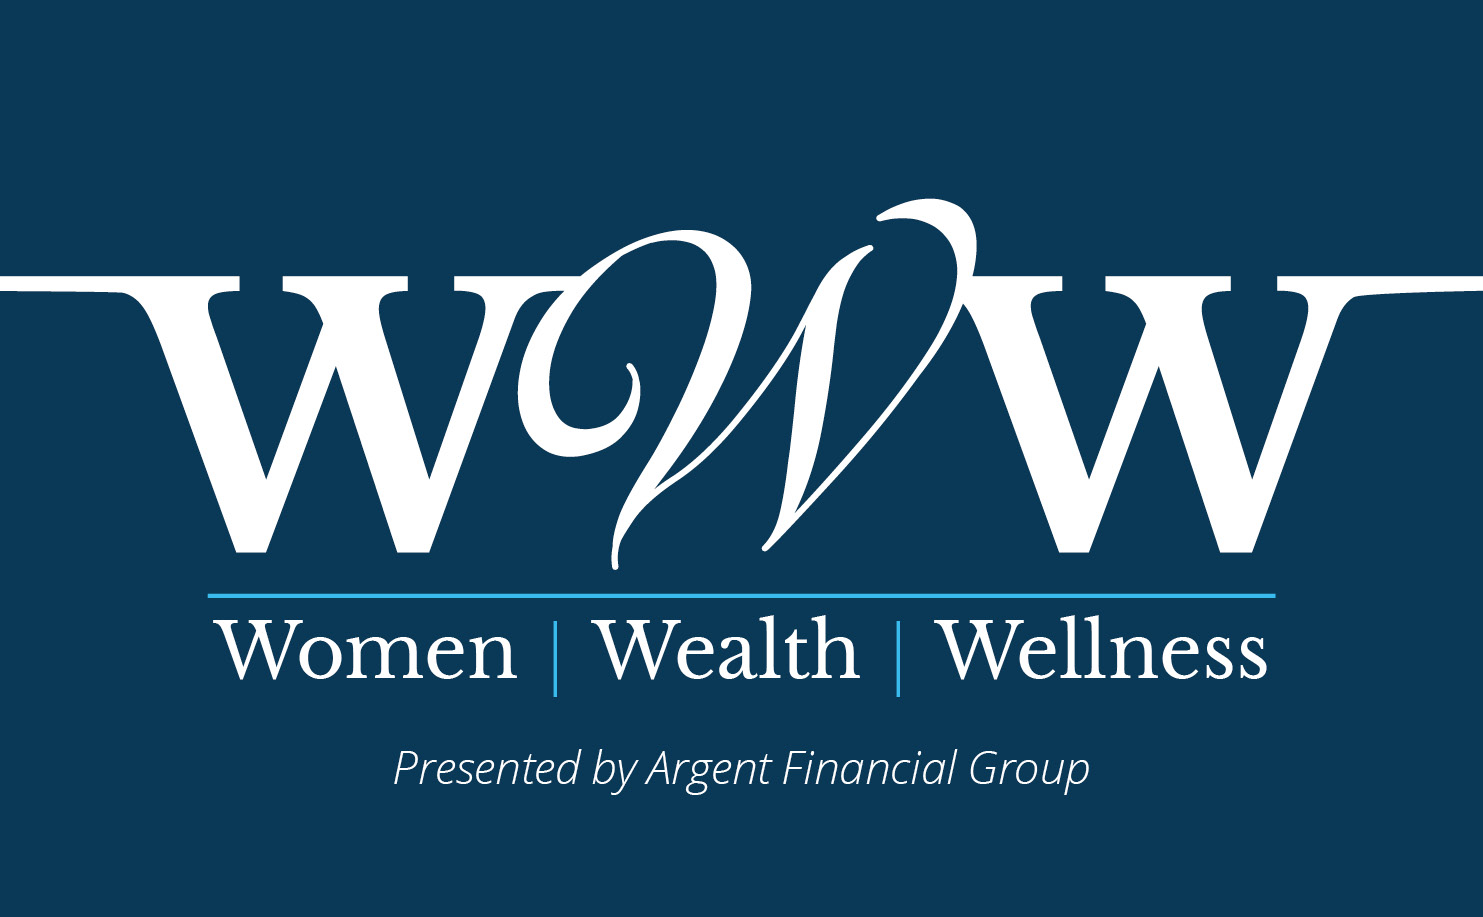 Women and Retirement Planning: Take control now to save for later